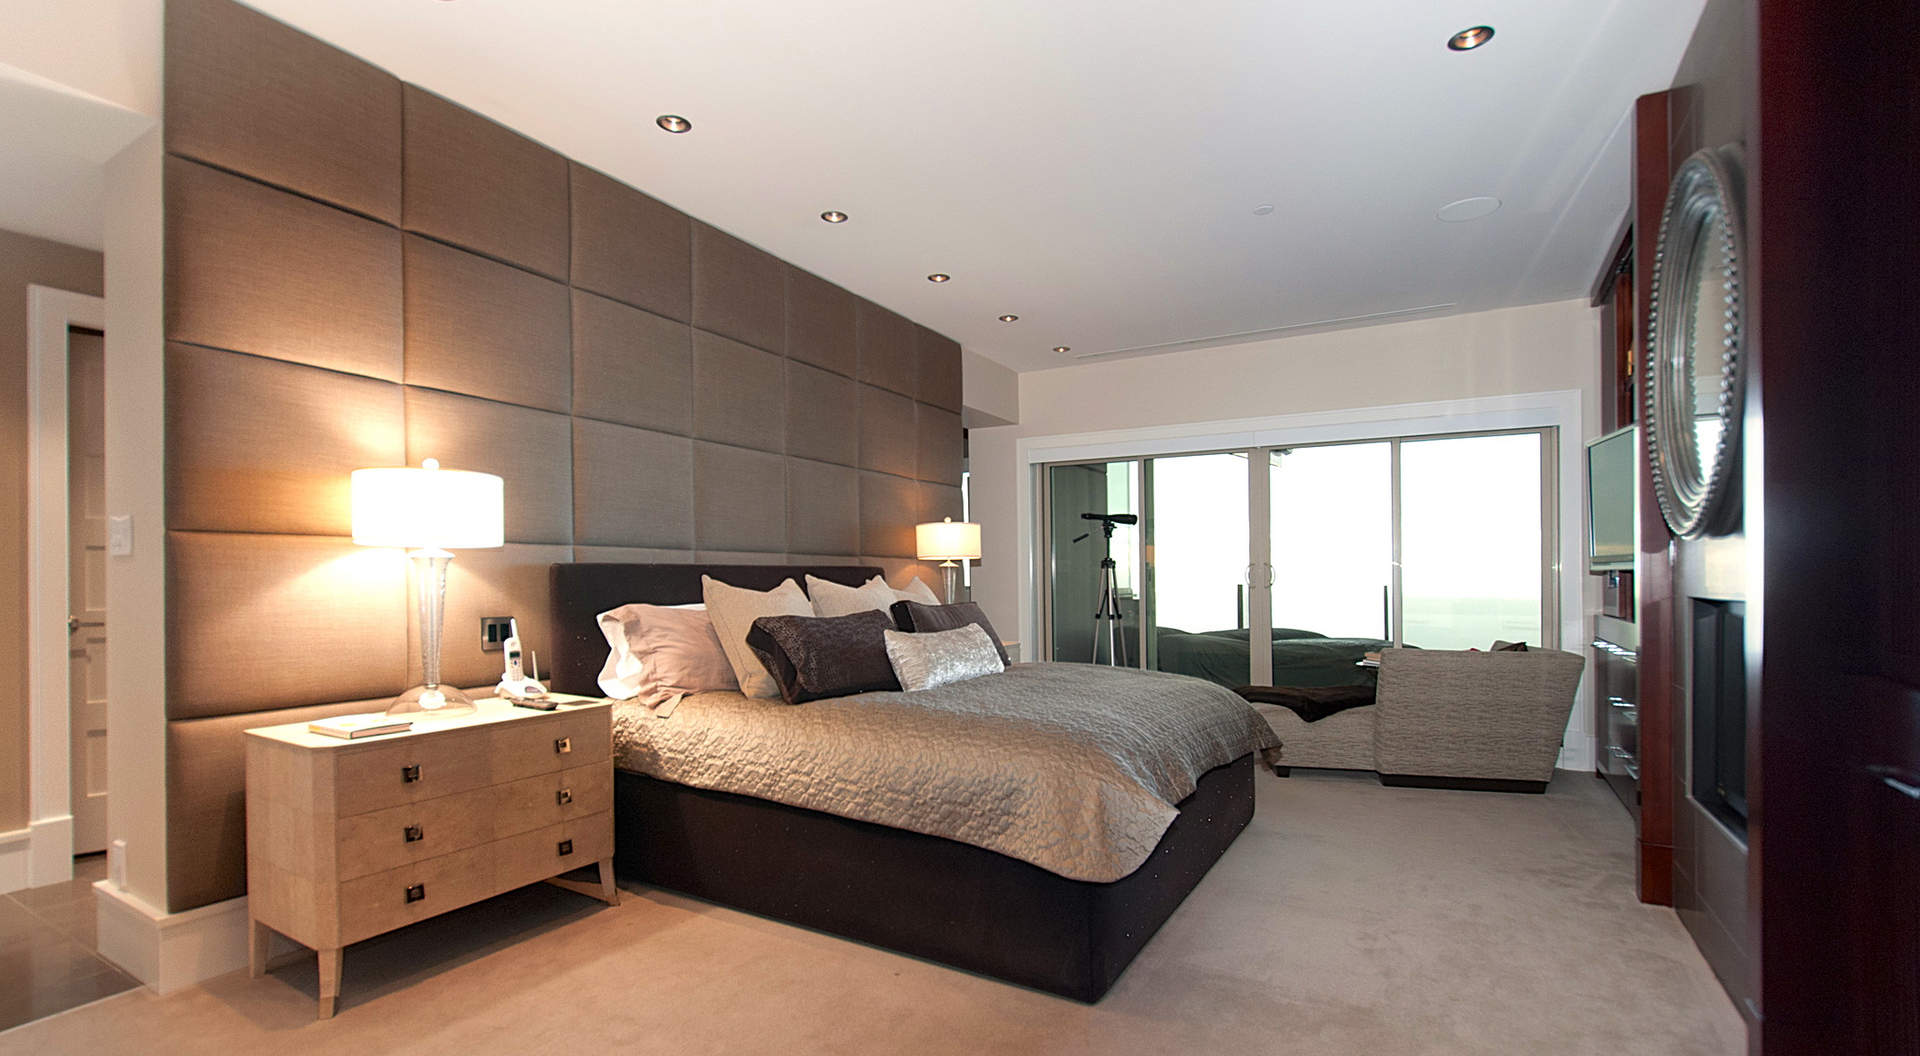 Penthouse Master Bedroom Interior Design Ideas